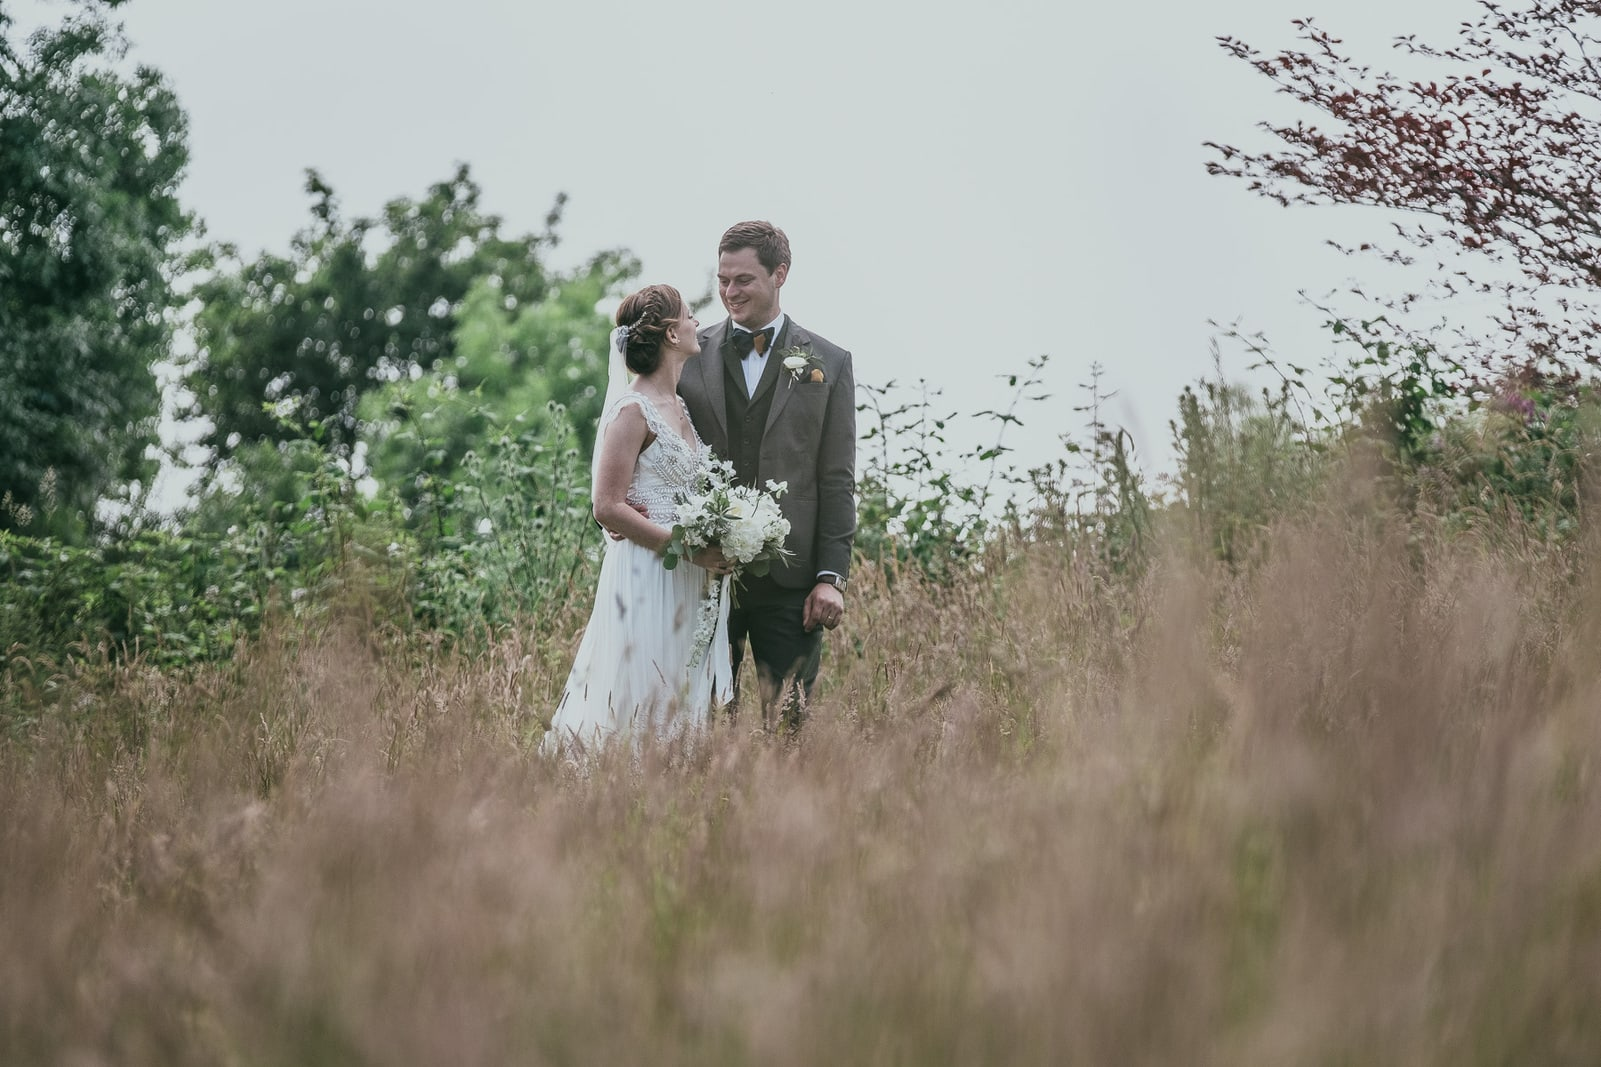 Wedding Photography at The Green Cornwall | My 200th Wedding!